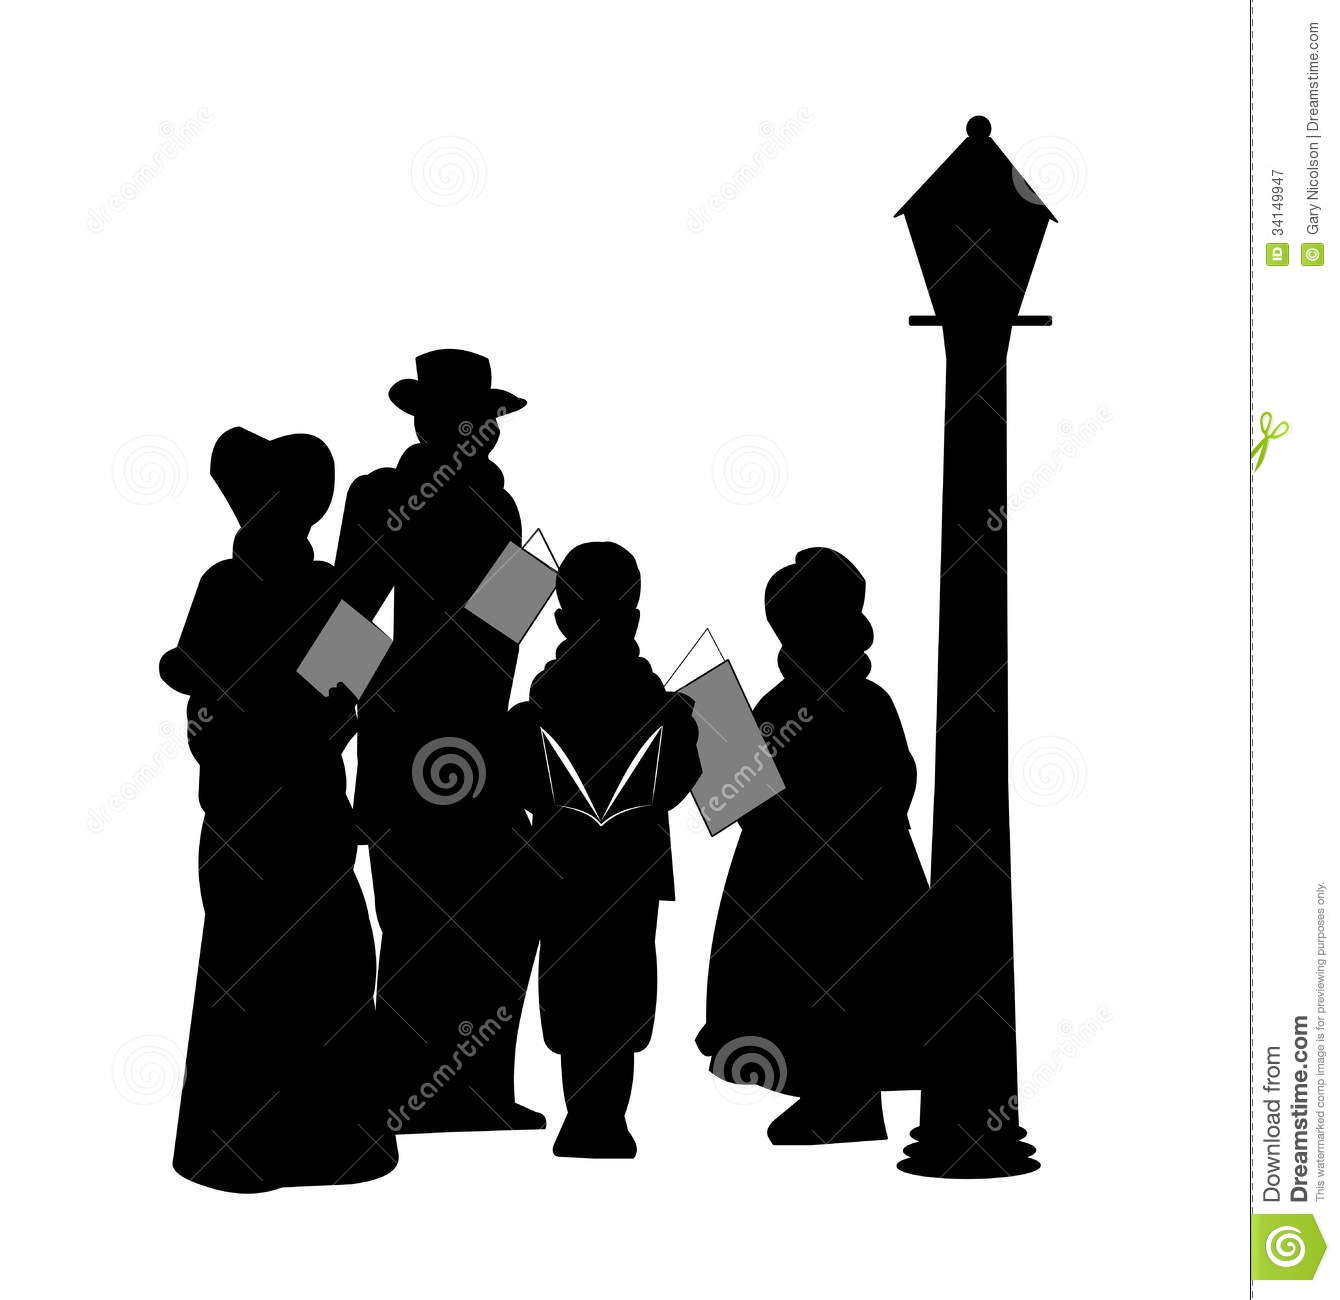 Christmas Carolers Royalty Free Stock Photography - Image: 34149947